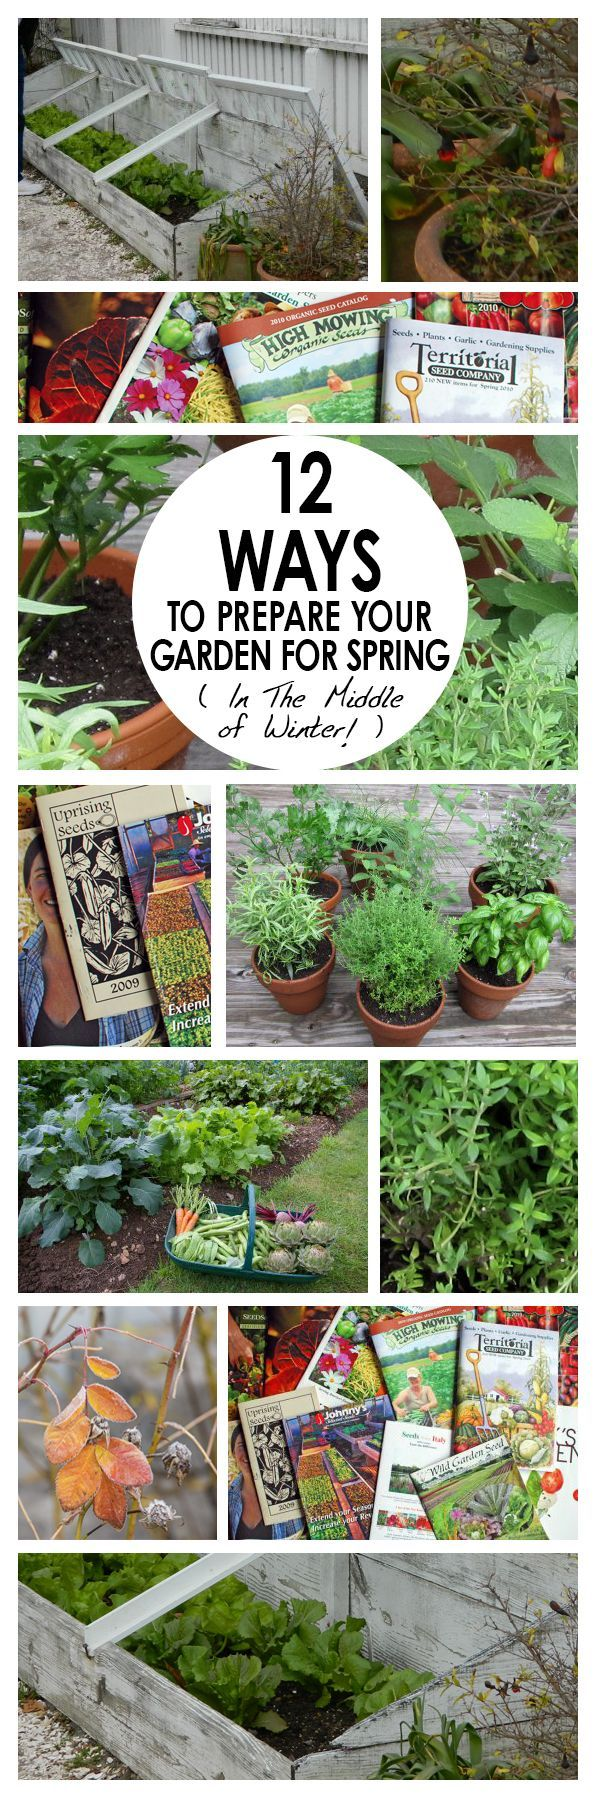 120 best my garden images on pinterest gardening plants and